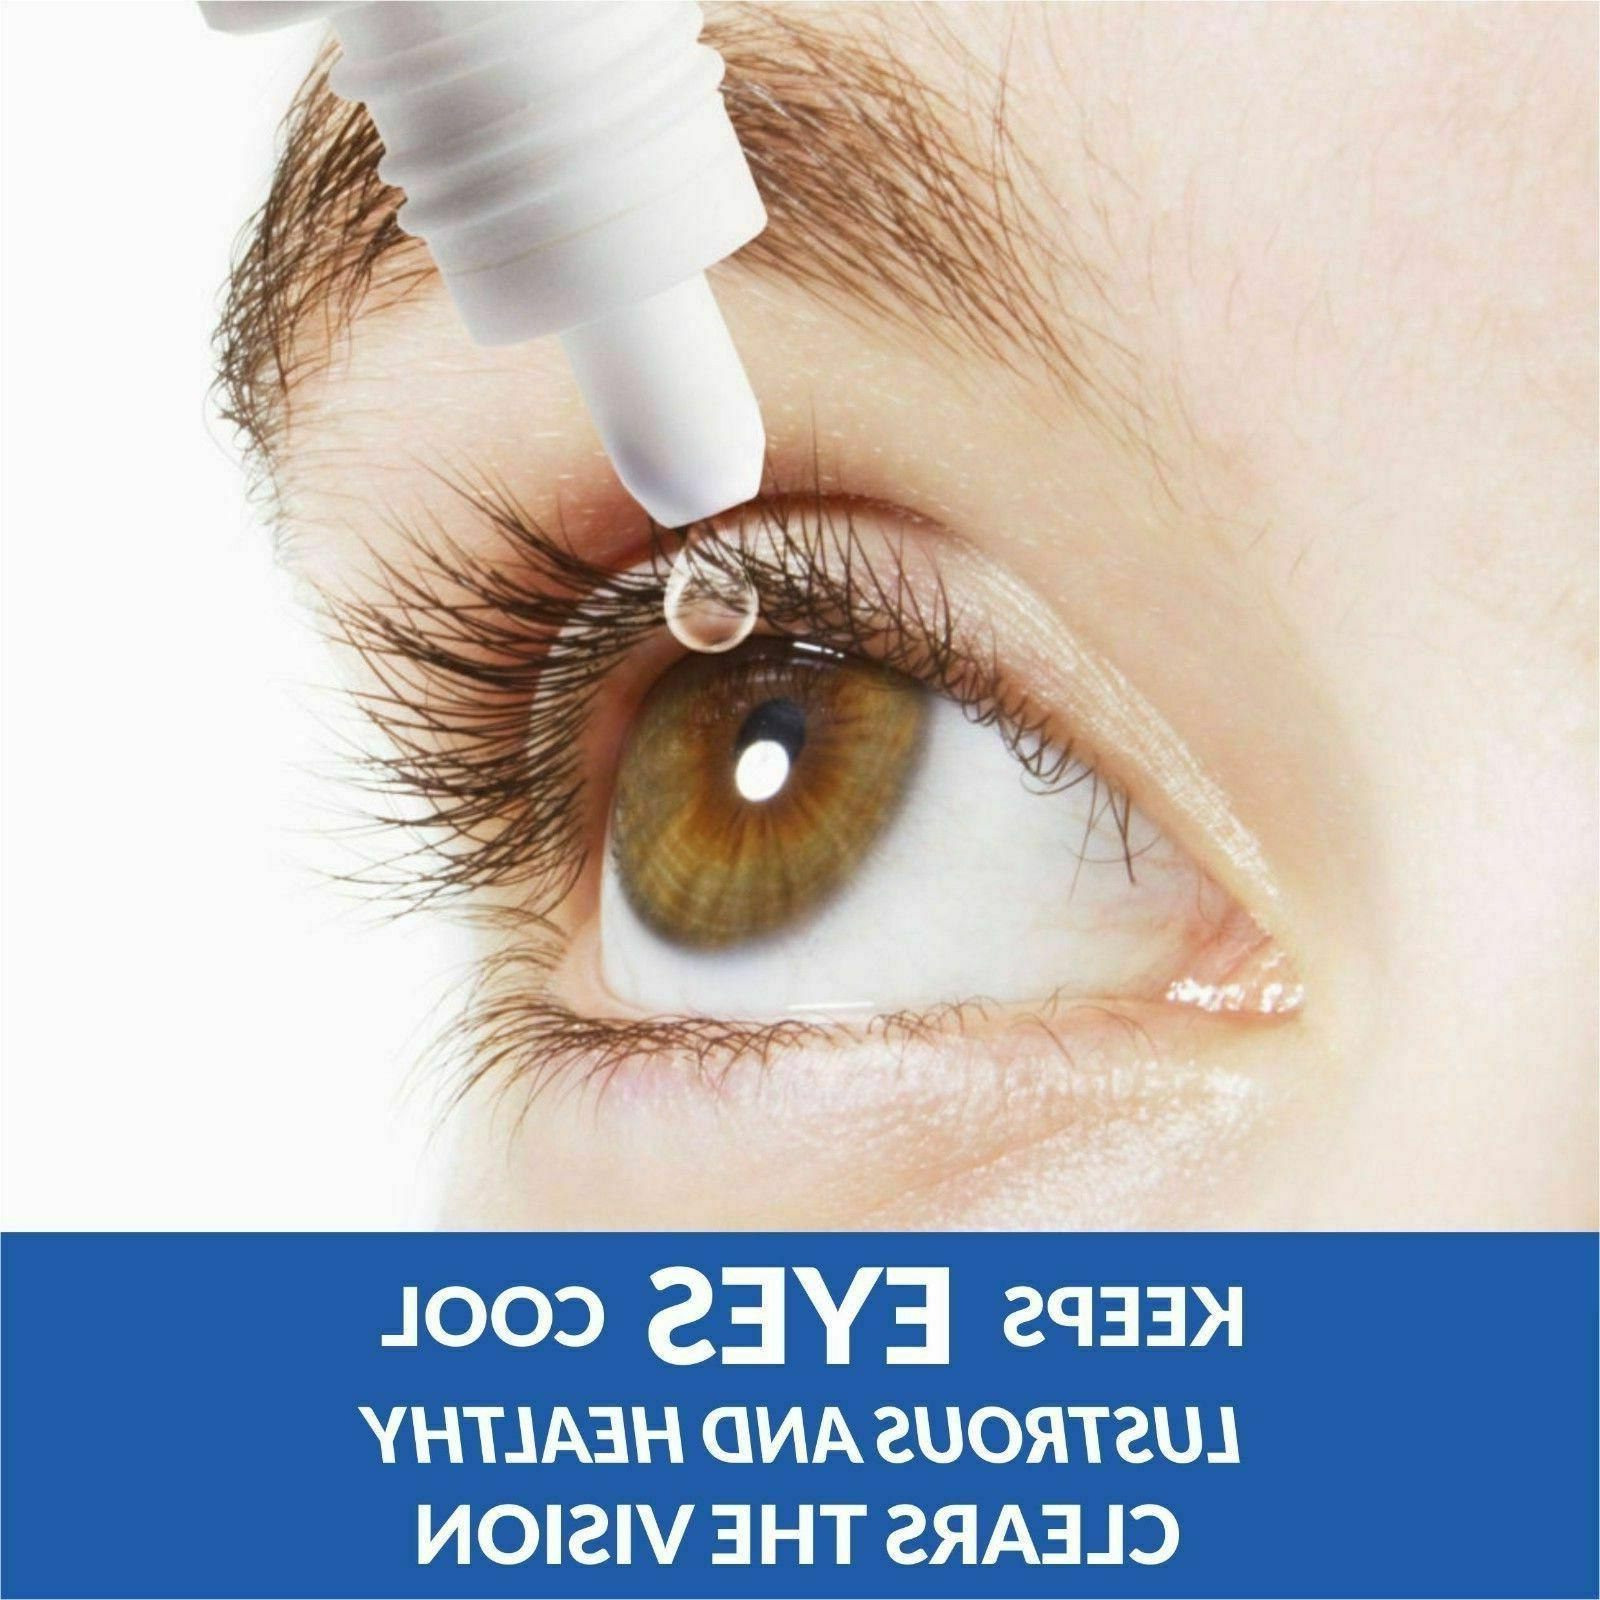 Eye Cataract,Glaucoma,Non-Carnosine ,Can